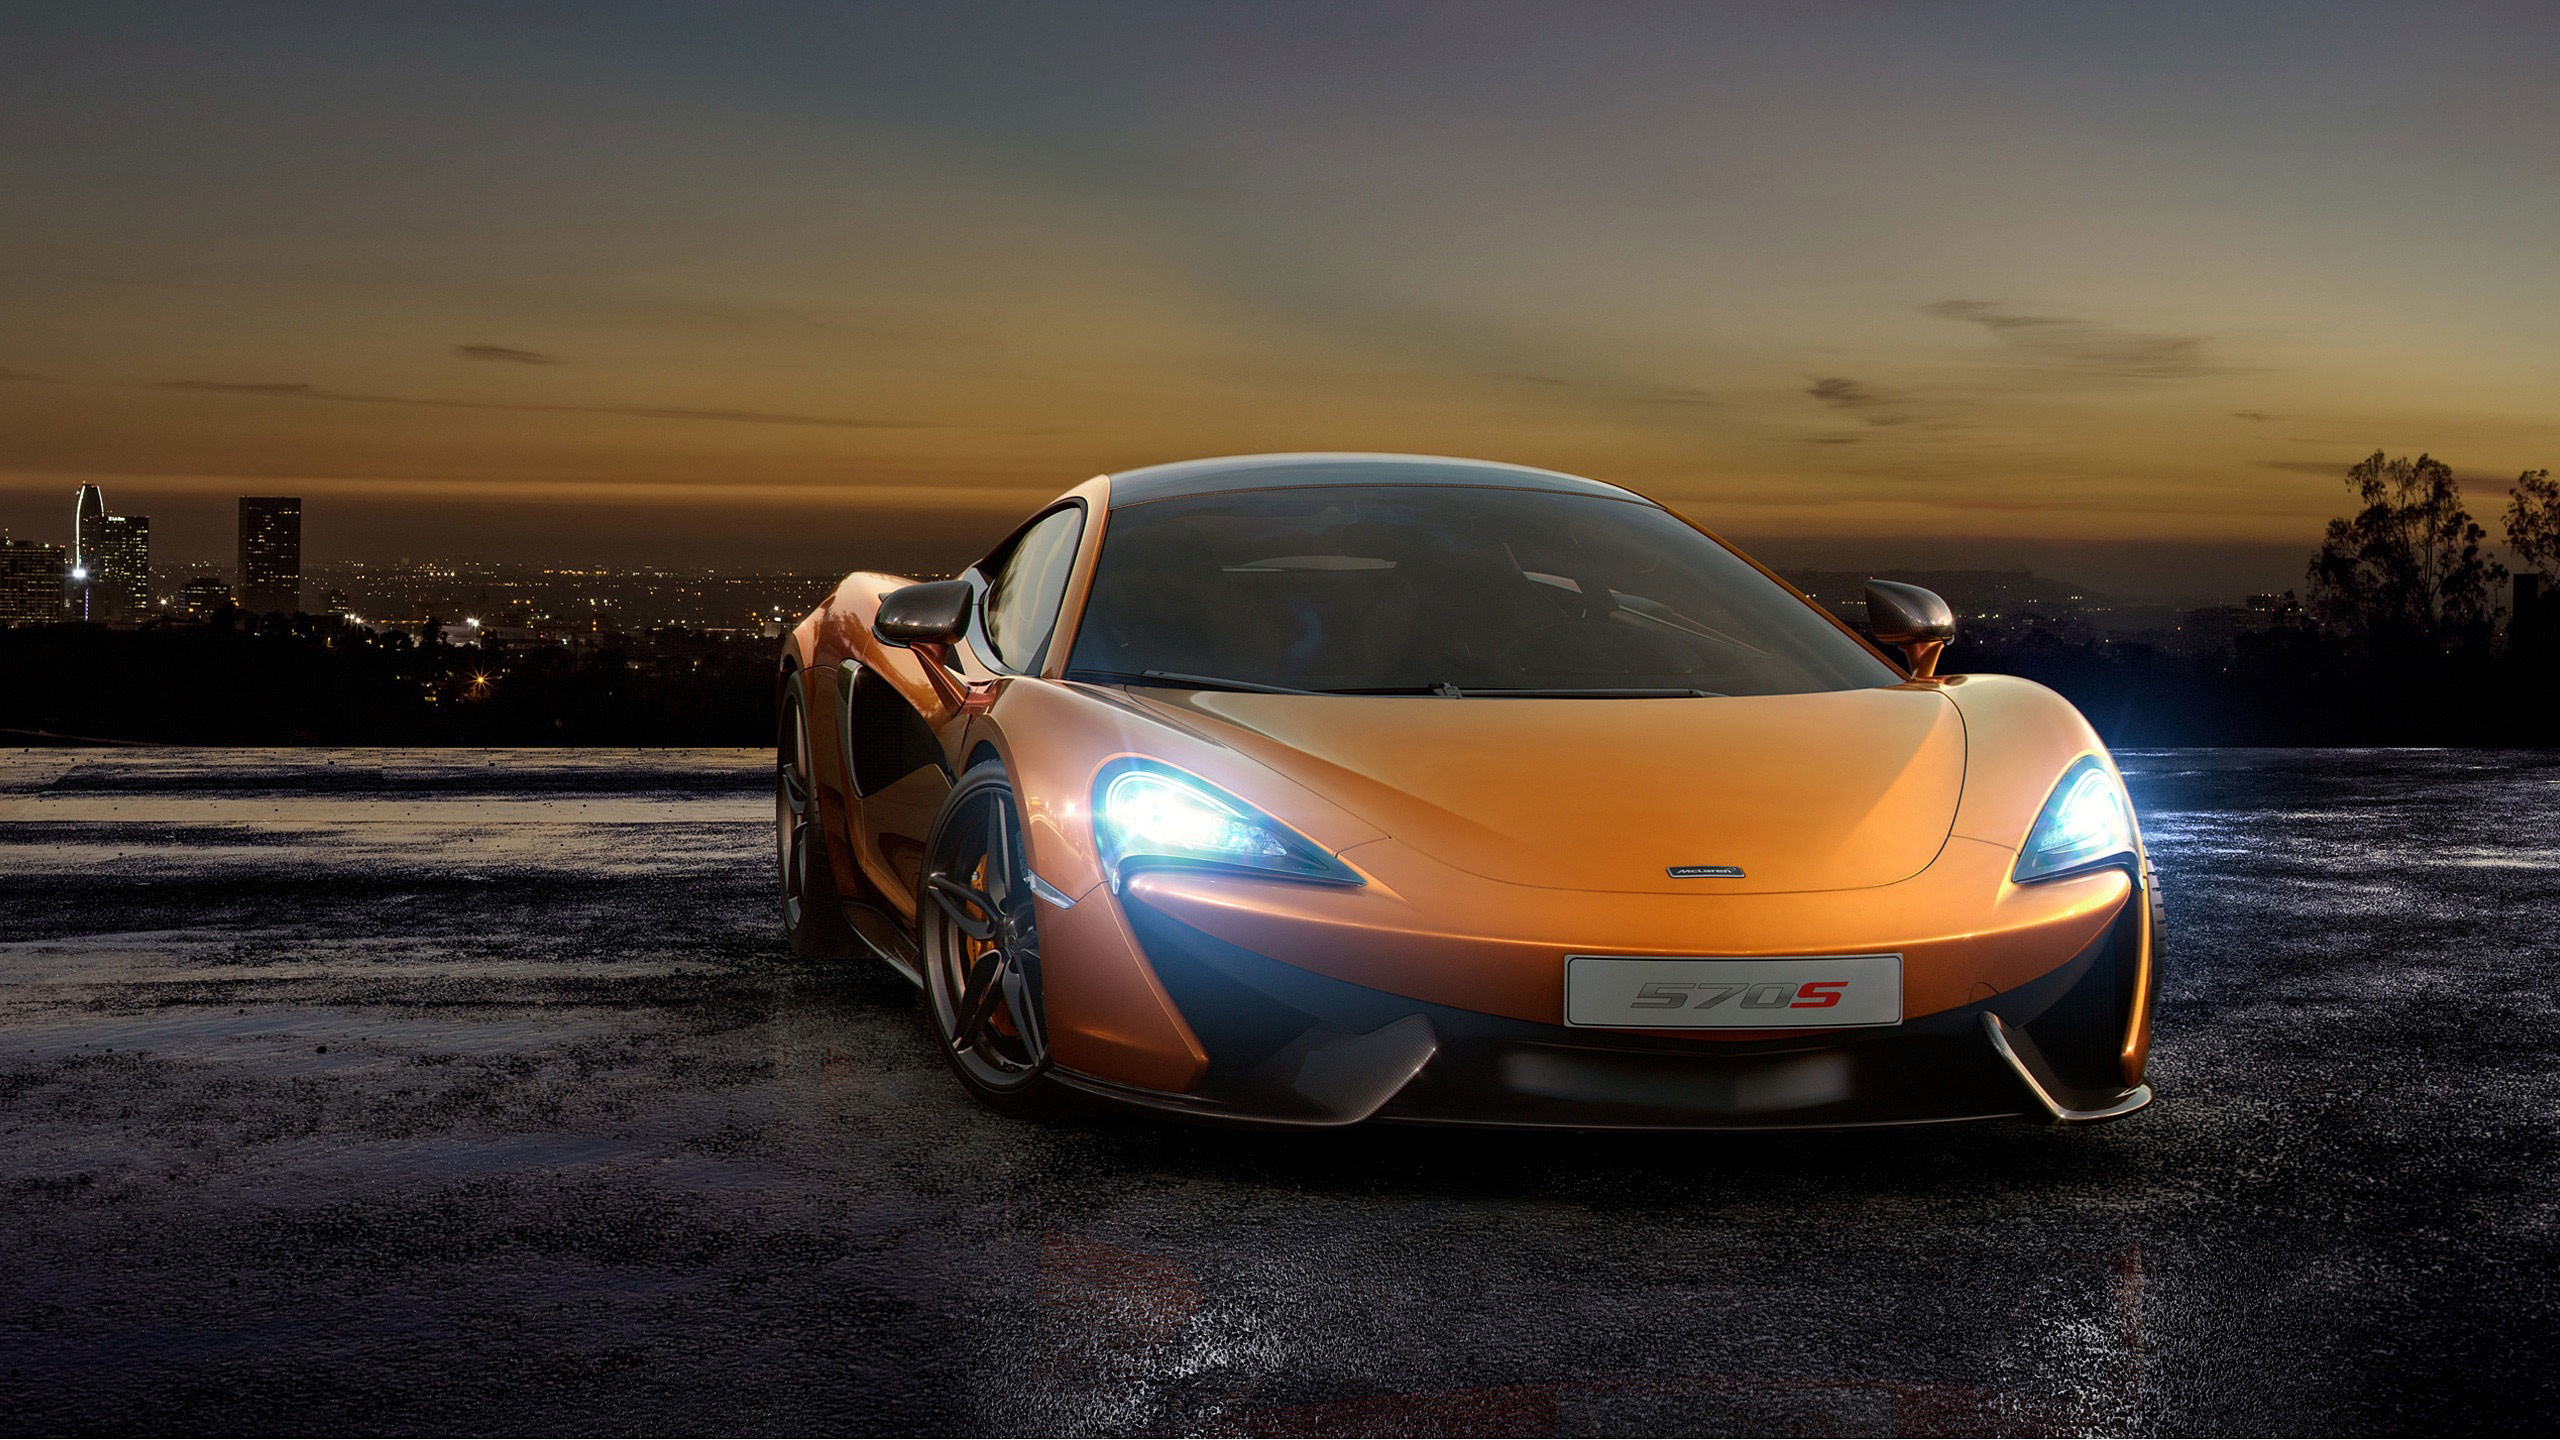 2560x1440 3d Cool Car Wallpaper